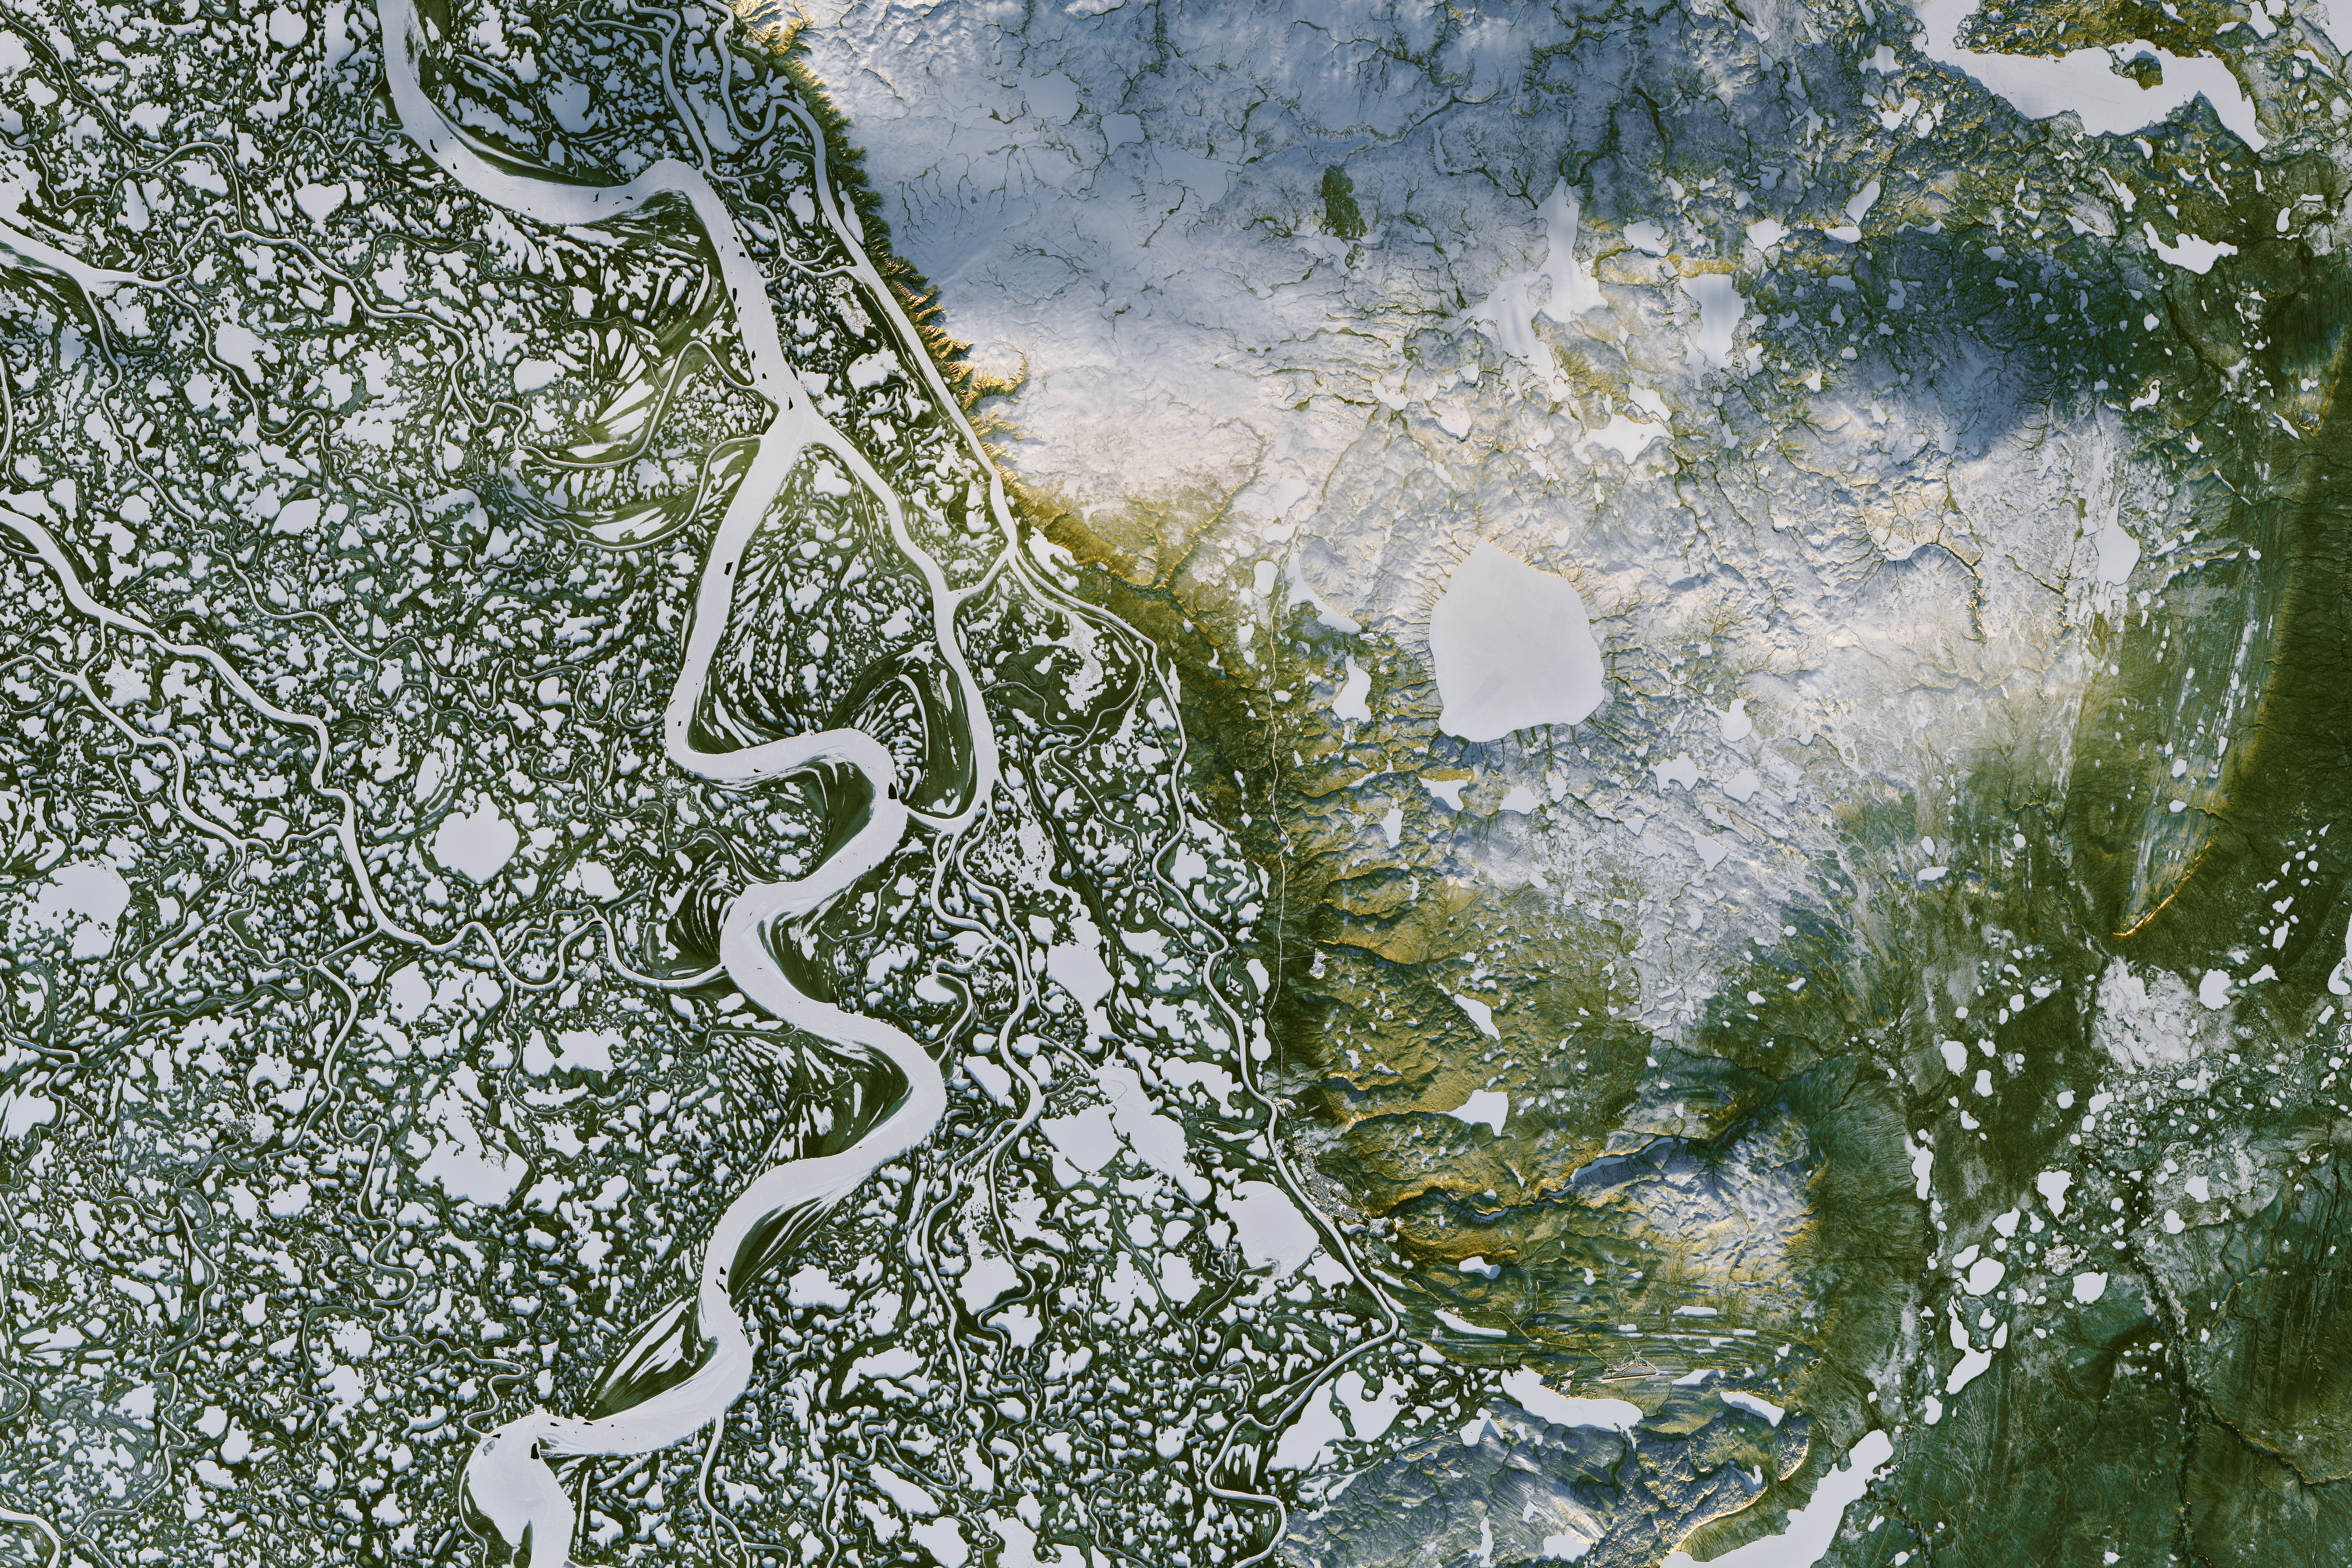 Mackenzie river in canadas northwest territories nasa publicscrutiny Choice Image